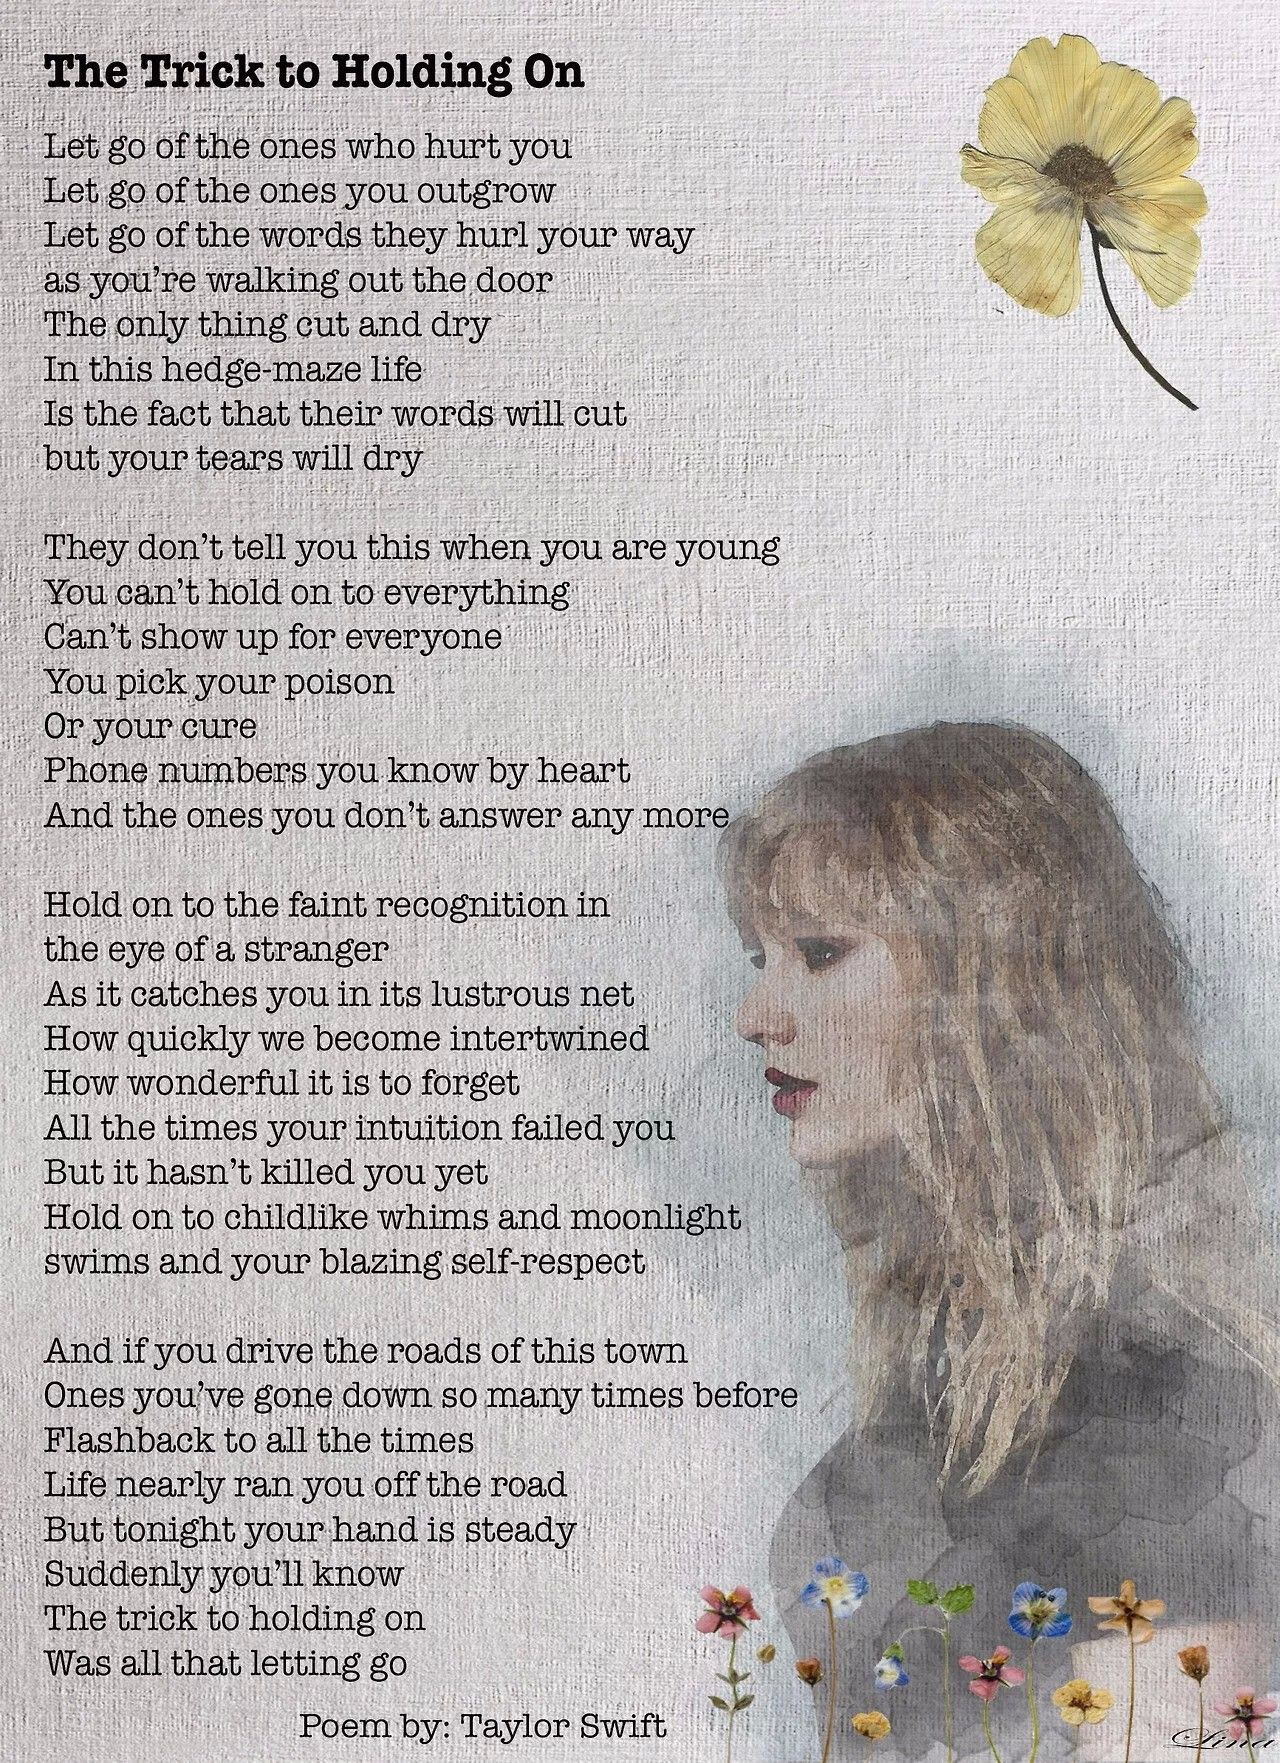 I Love The Line Hold On To Childlike Whims And Moonlight Very Pretty Poem Taylor Swift Quotes Taylor Swift Lyrics Taylor Swift